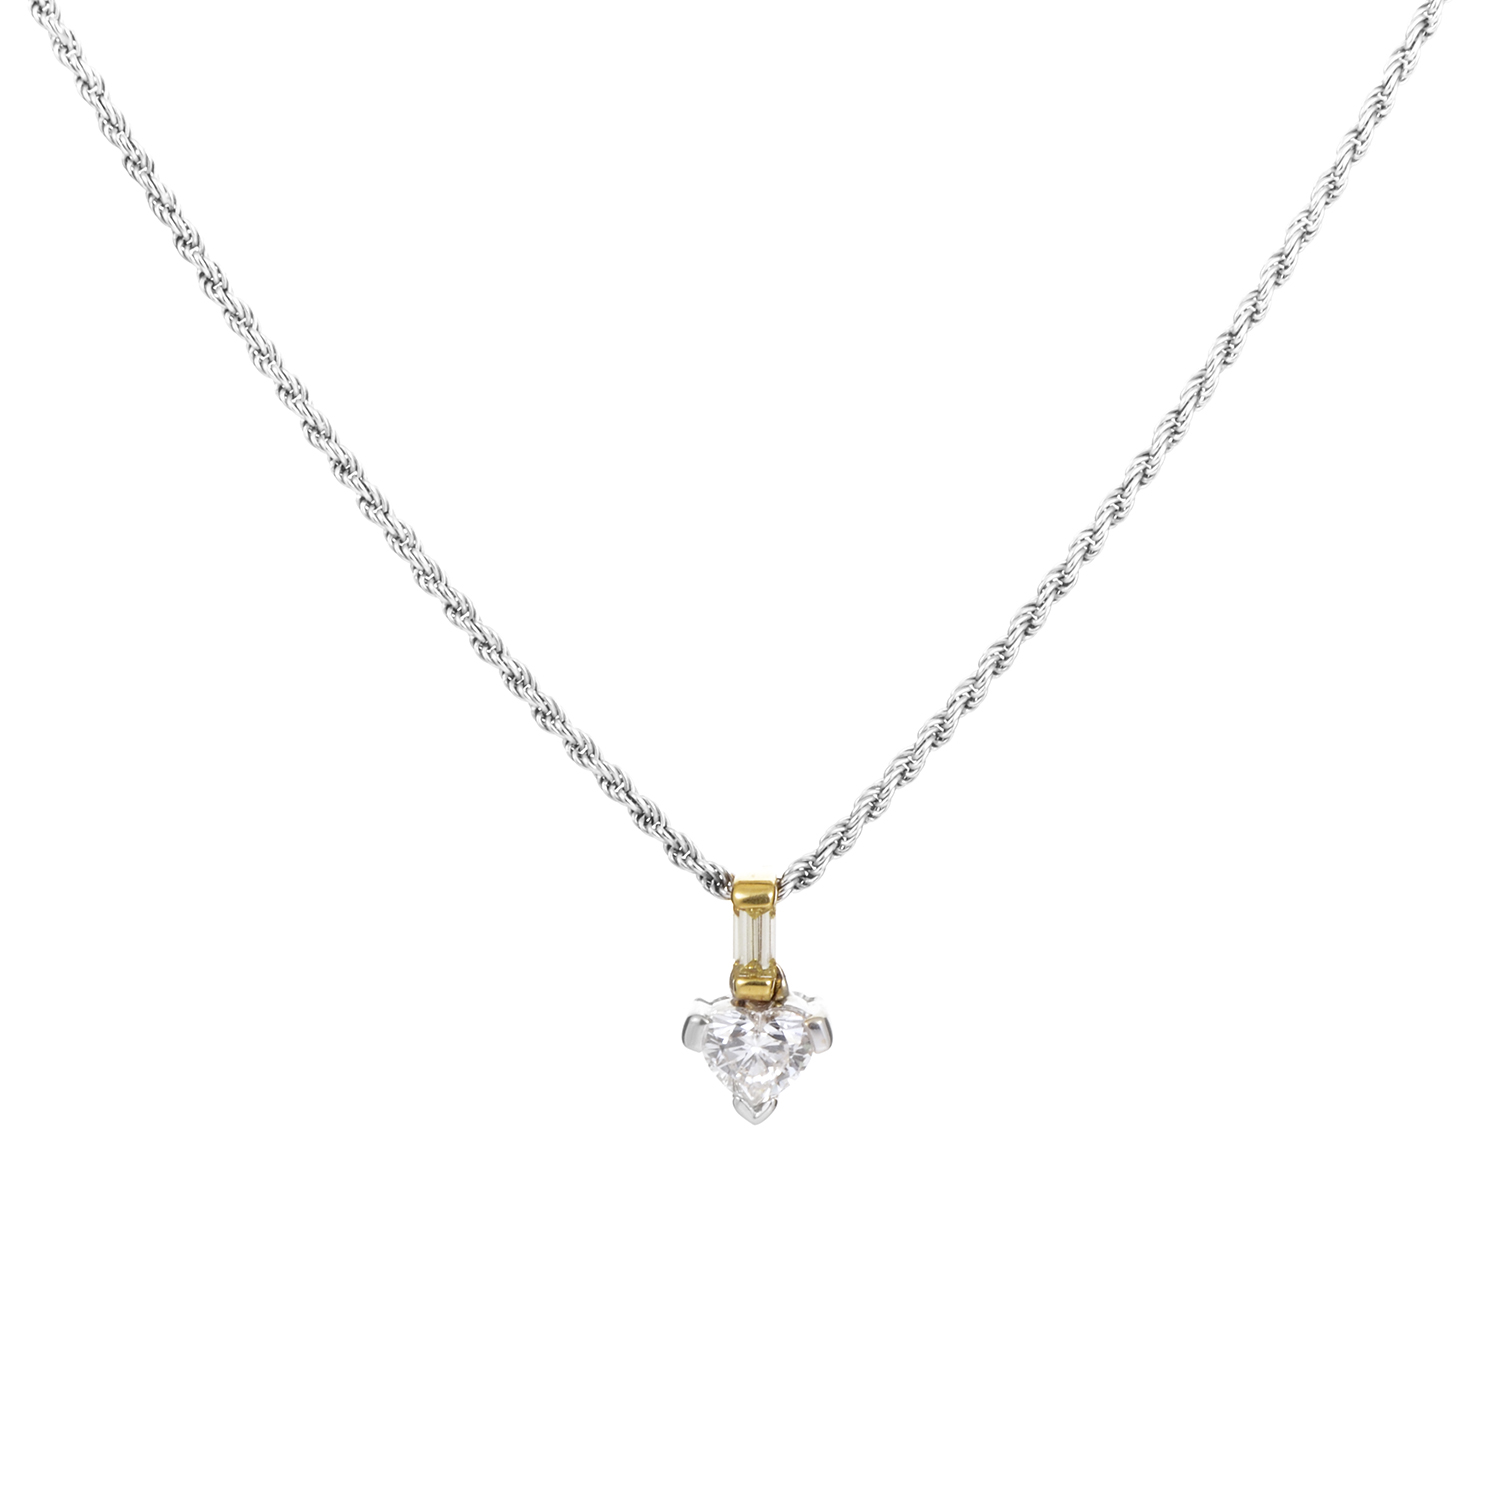 Damiani 18K Multi-Tone Gold Diamond Pendant Necklace